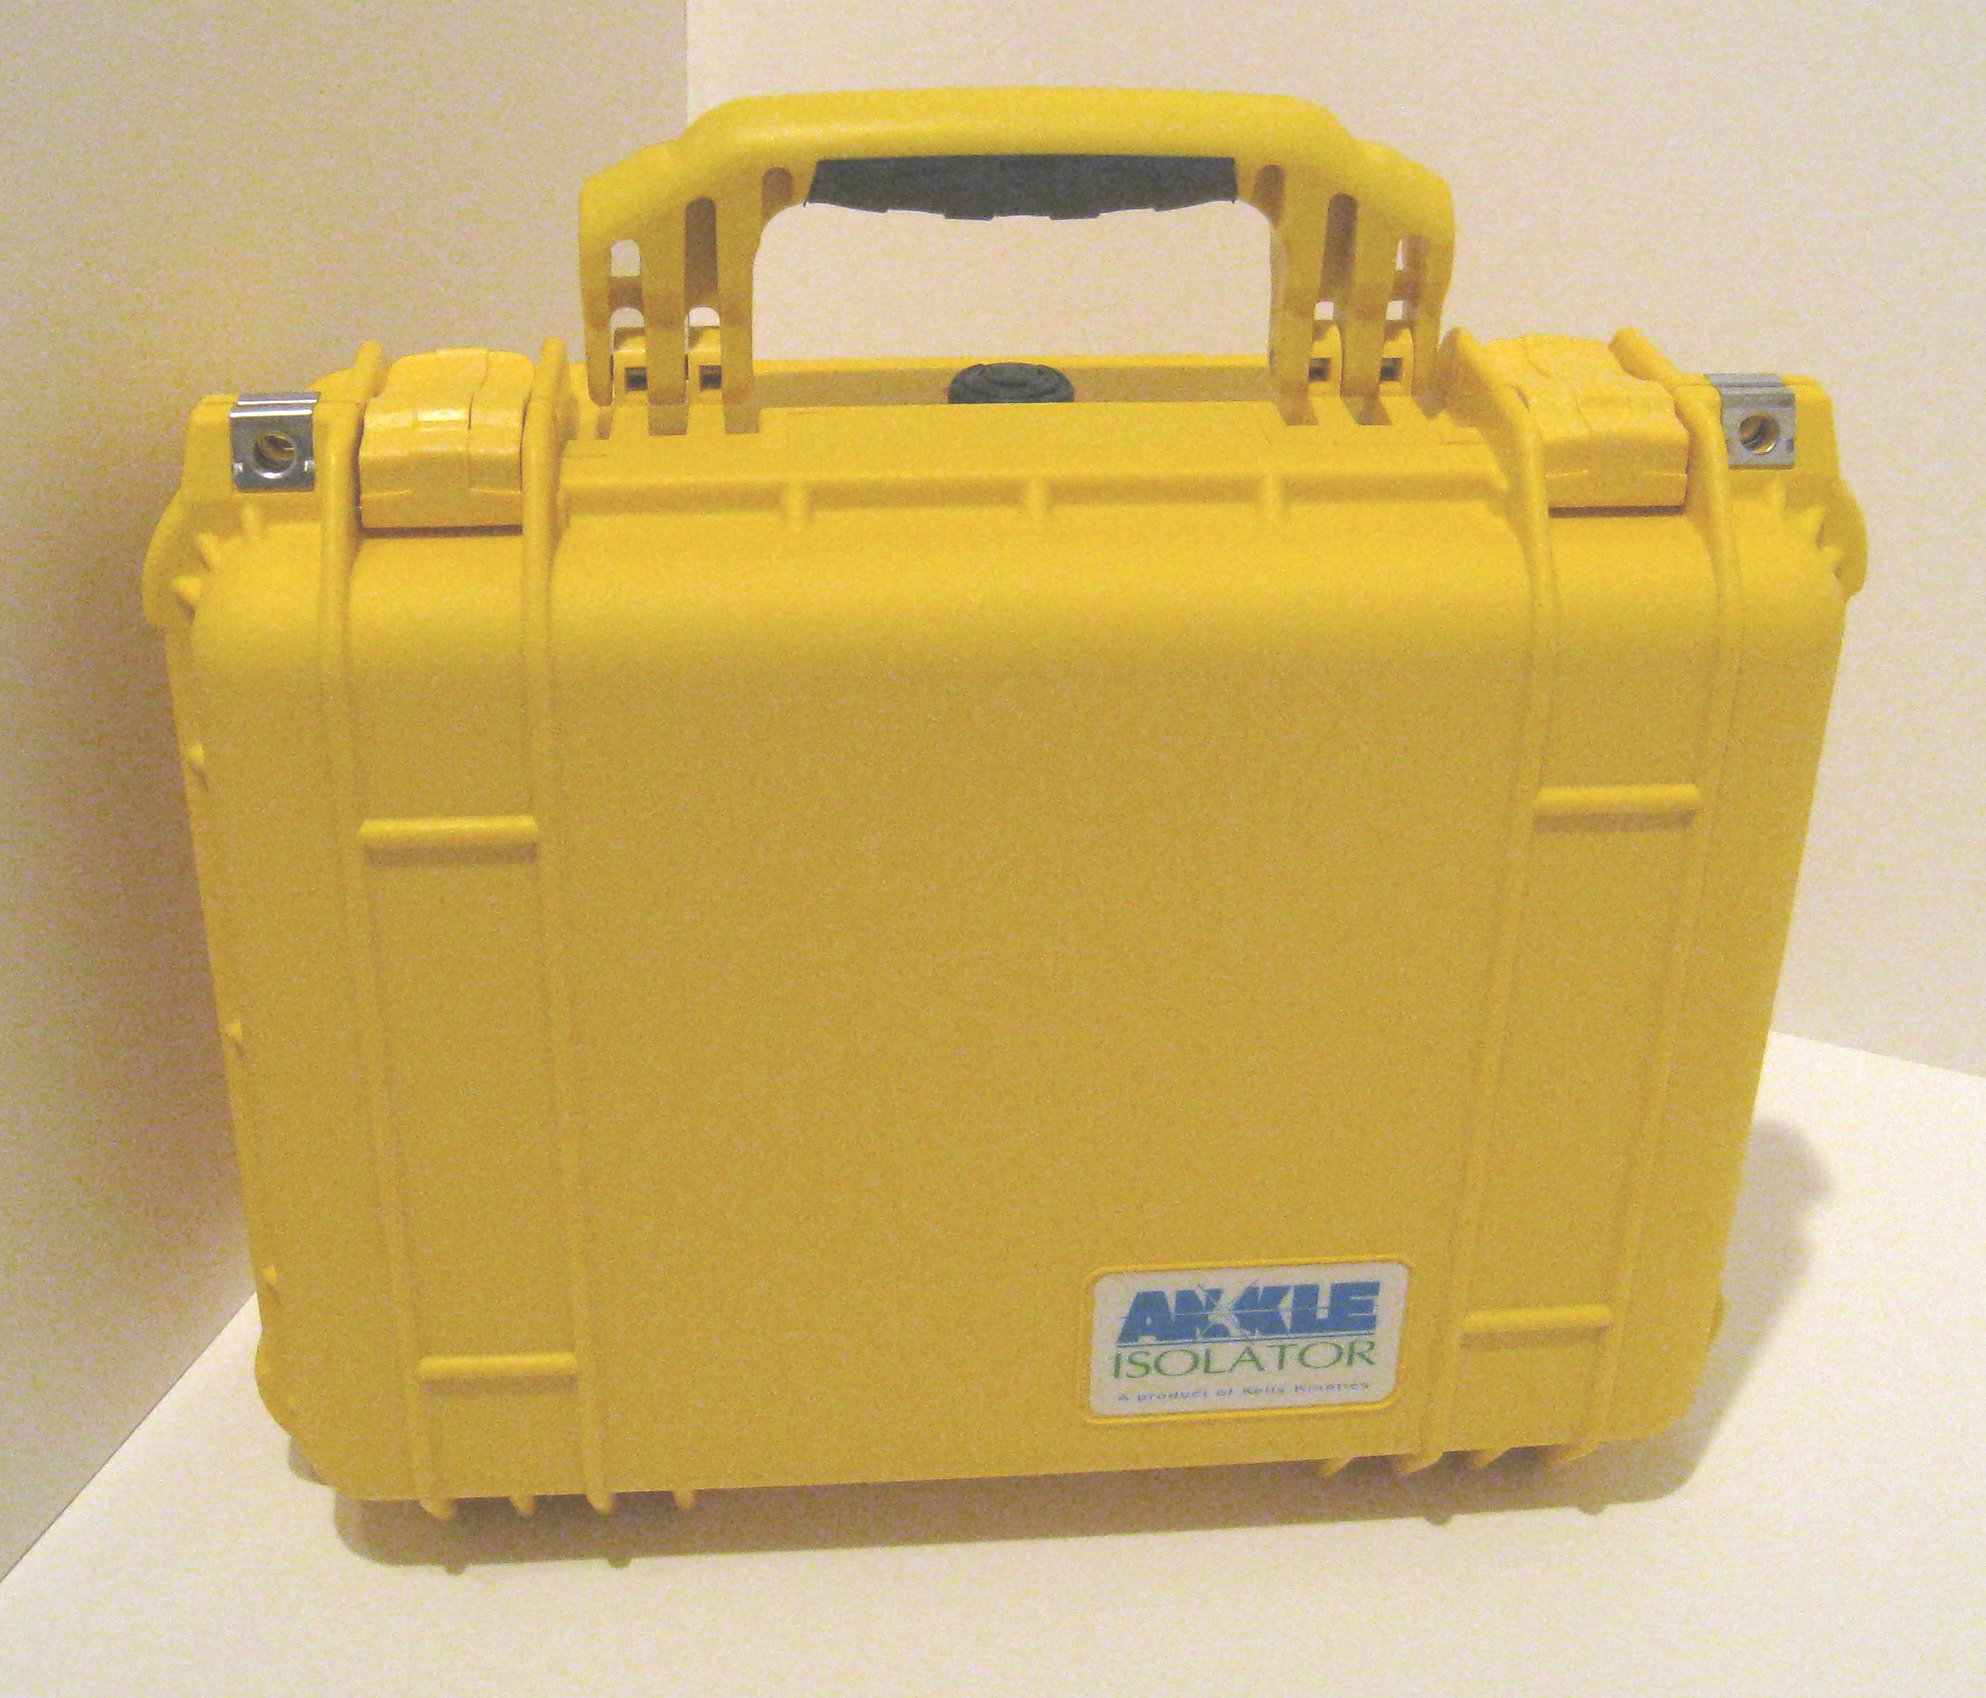 Ankle Isolator Case - Model 4501 by HealthMegaMall